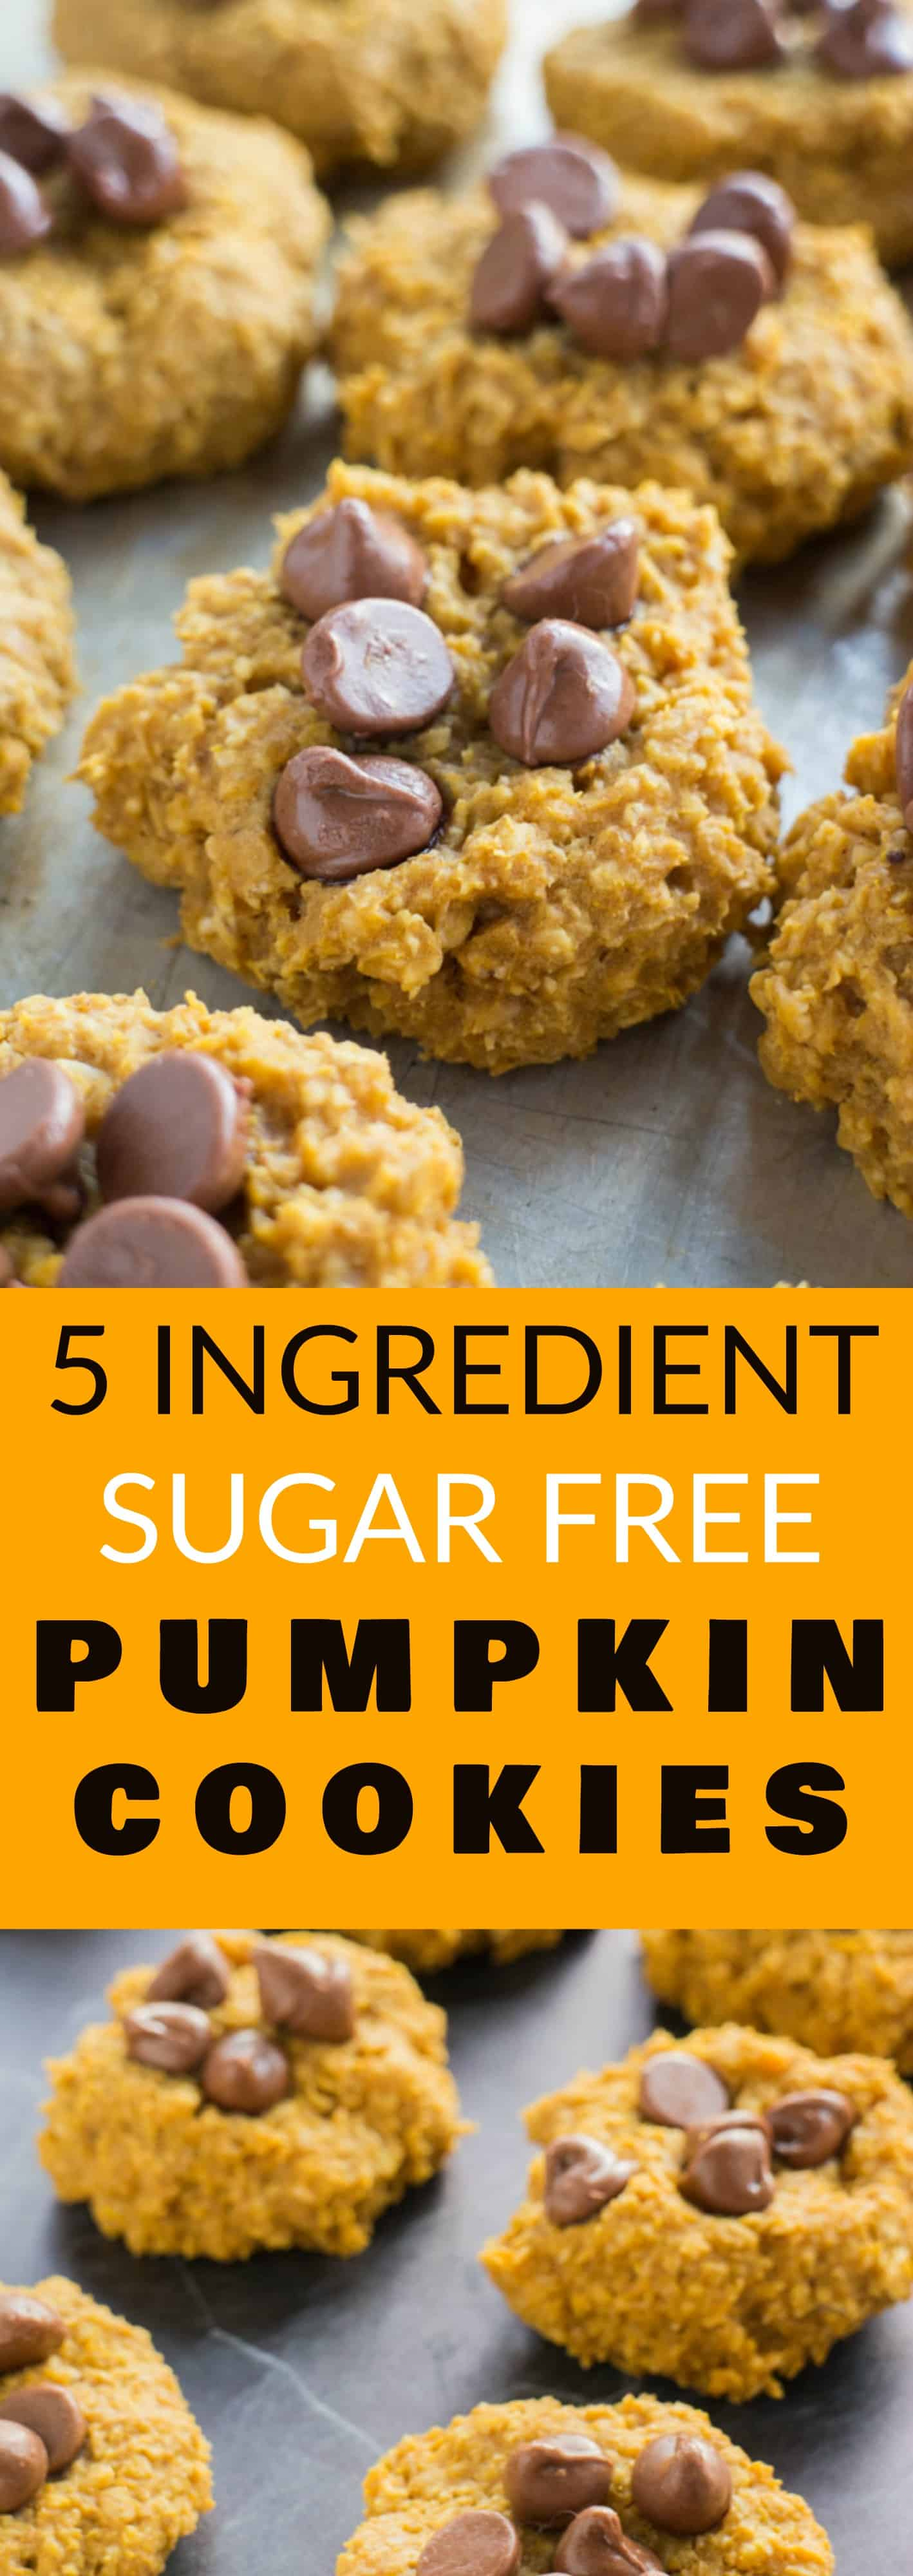 EASY to make 5 Ingredient Healthy Pumpkin Cookies recipe! These soft Pumpkin Oatmeal Cookies are sugar free, instead using maple syrup!  Make sure to add chocolate chips on top to make them extra delicious!